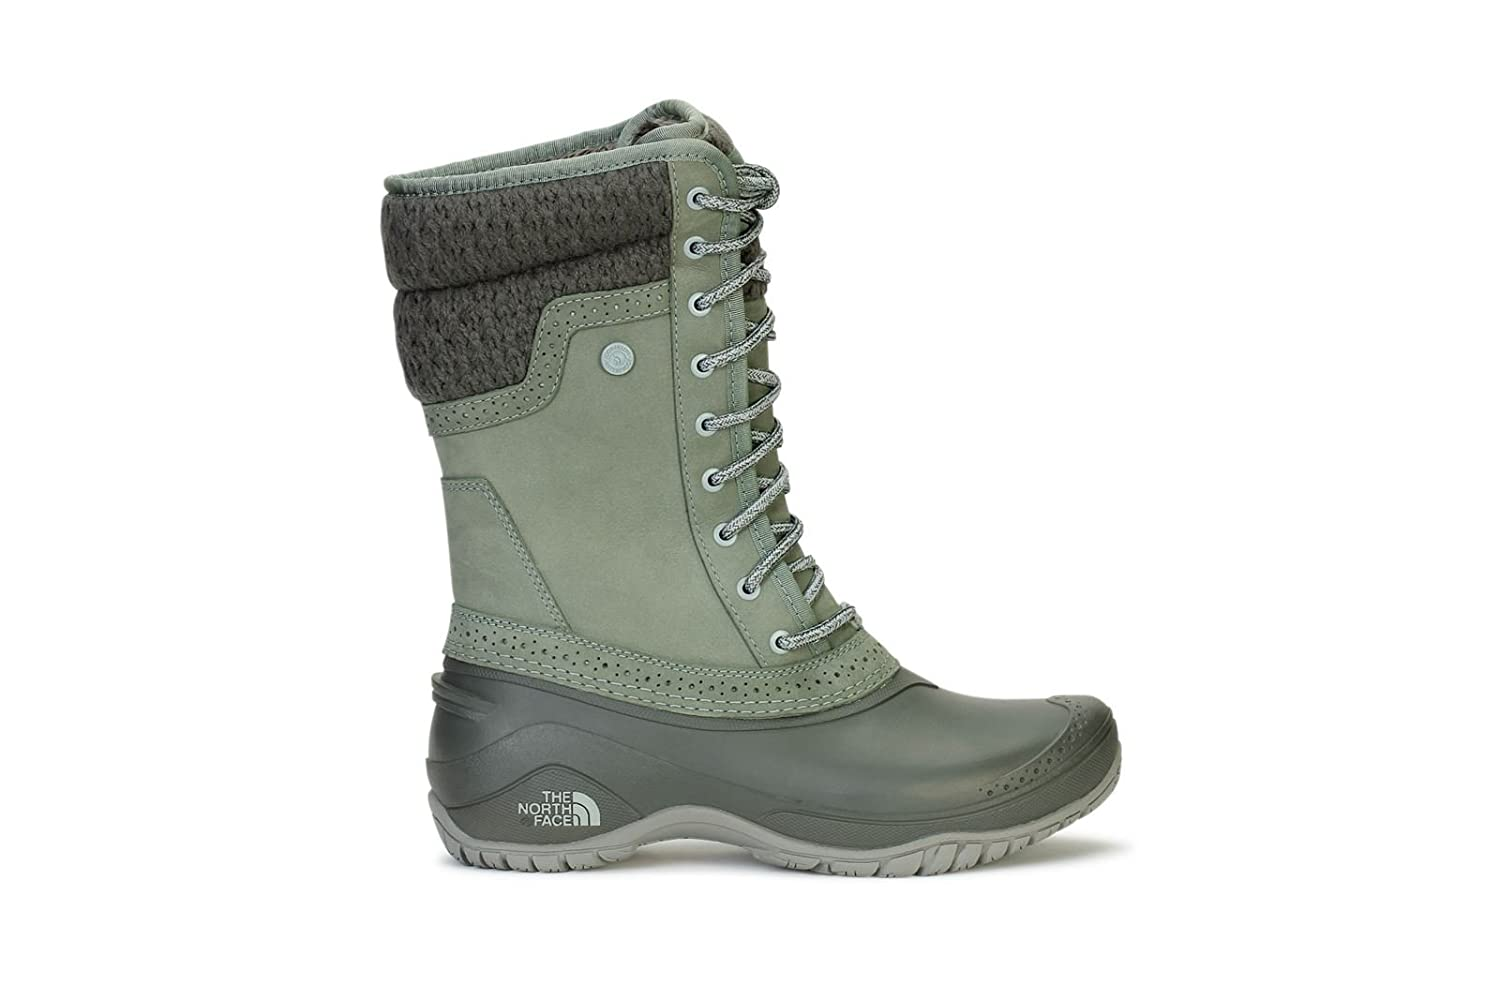 The North Face Womens Shellista II Mid B018WSWIEM 8 B(M) US|Duck Green/Wrought Iron (Prior Season)